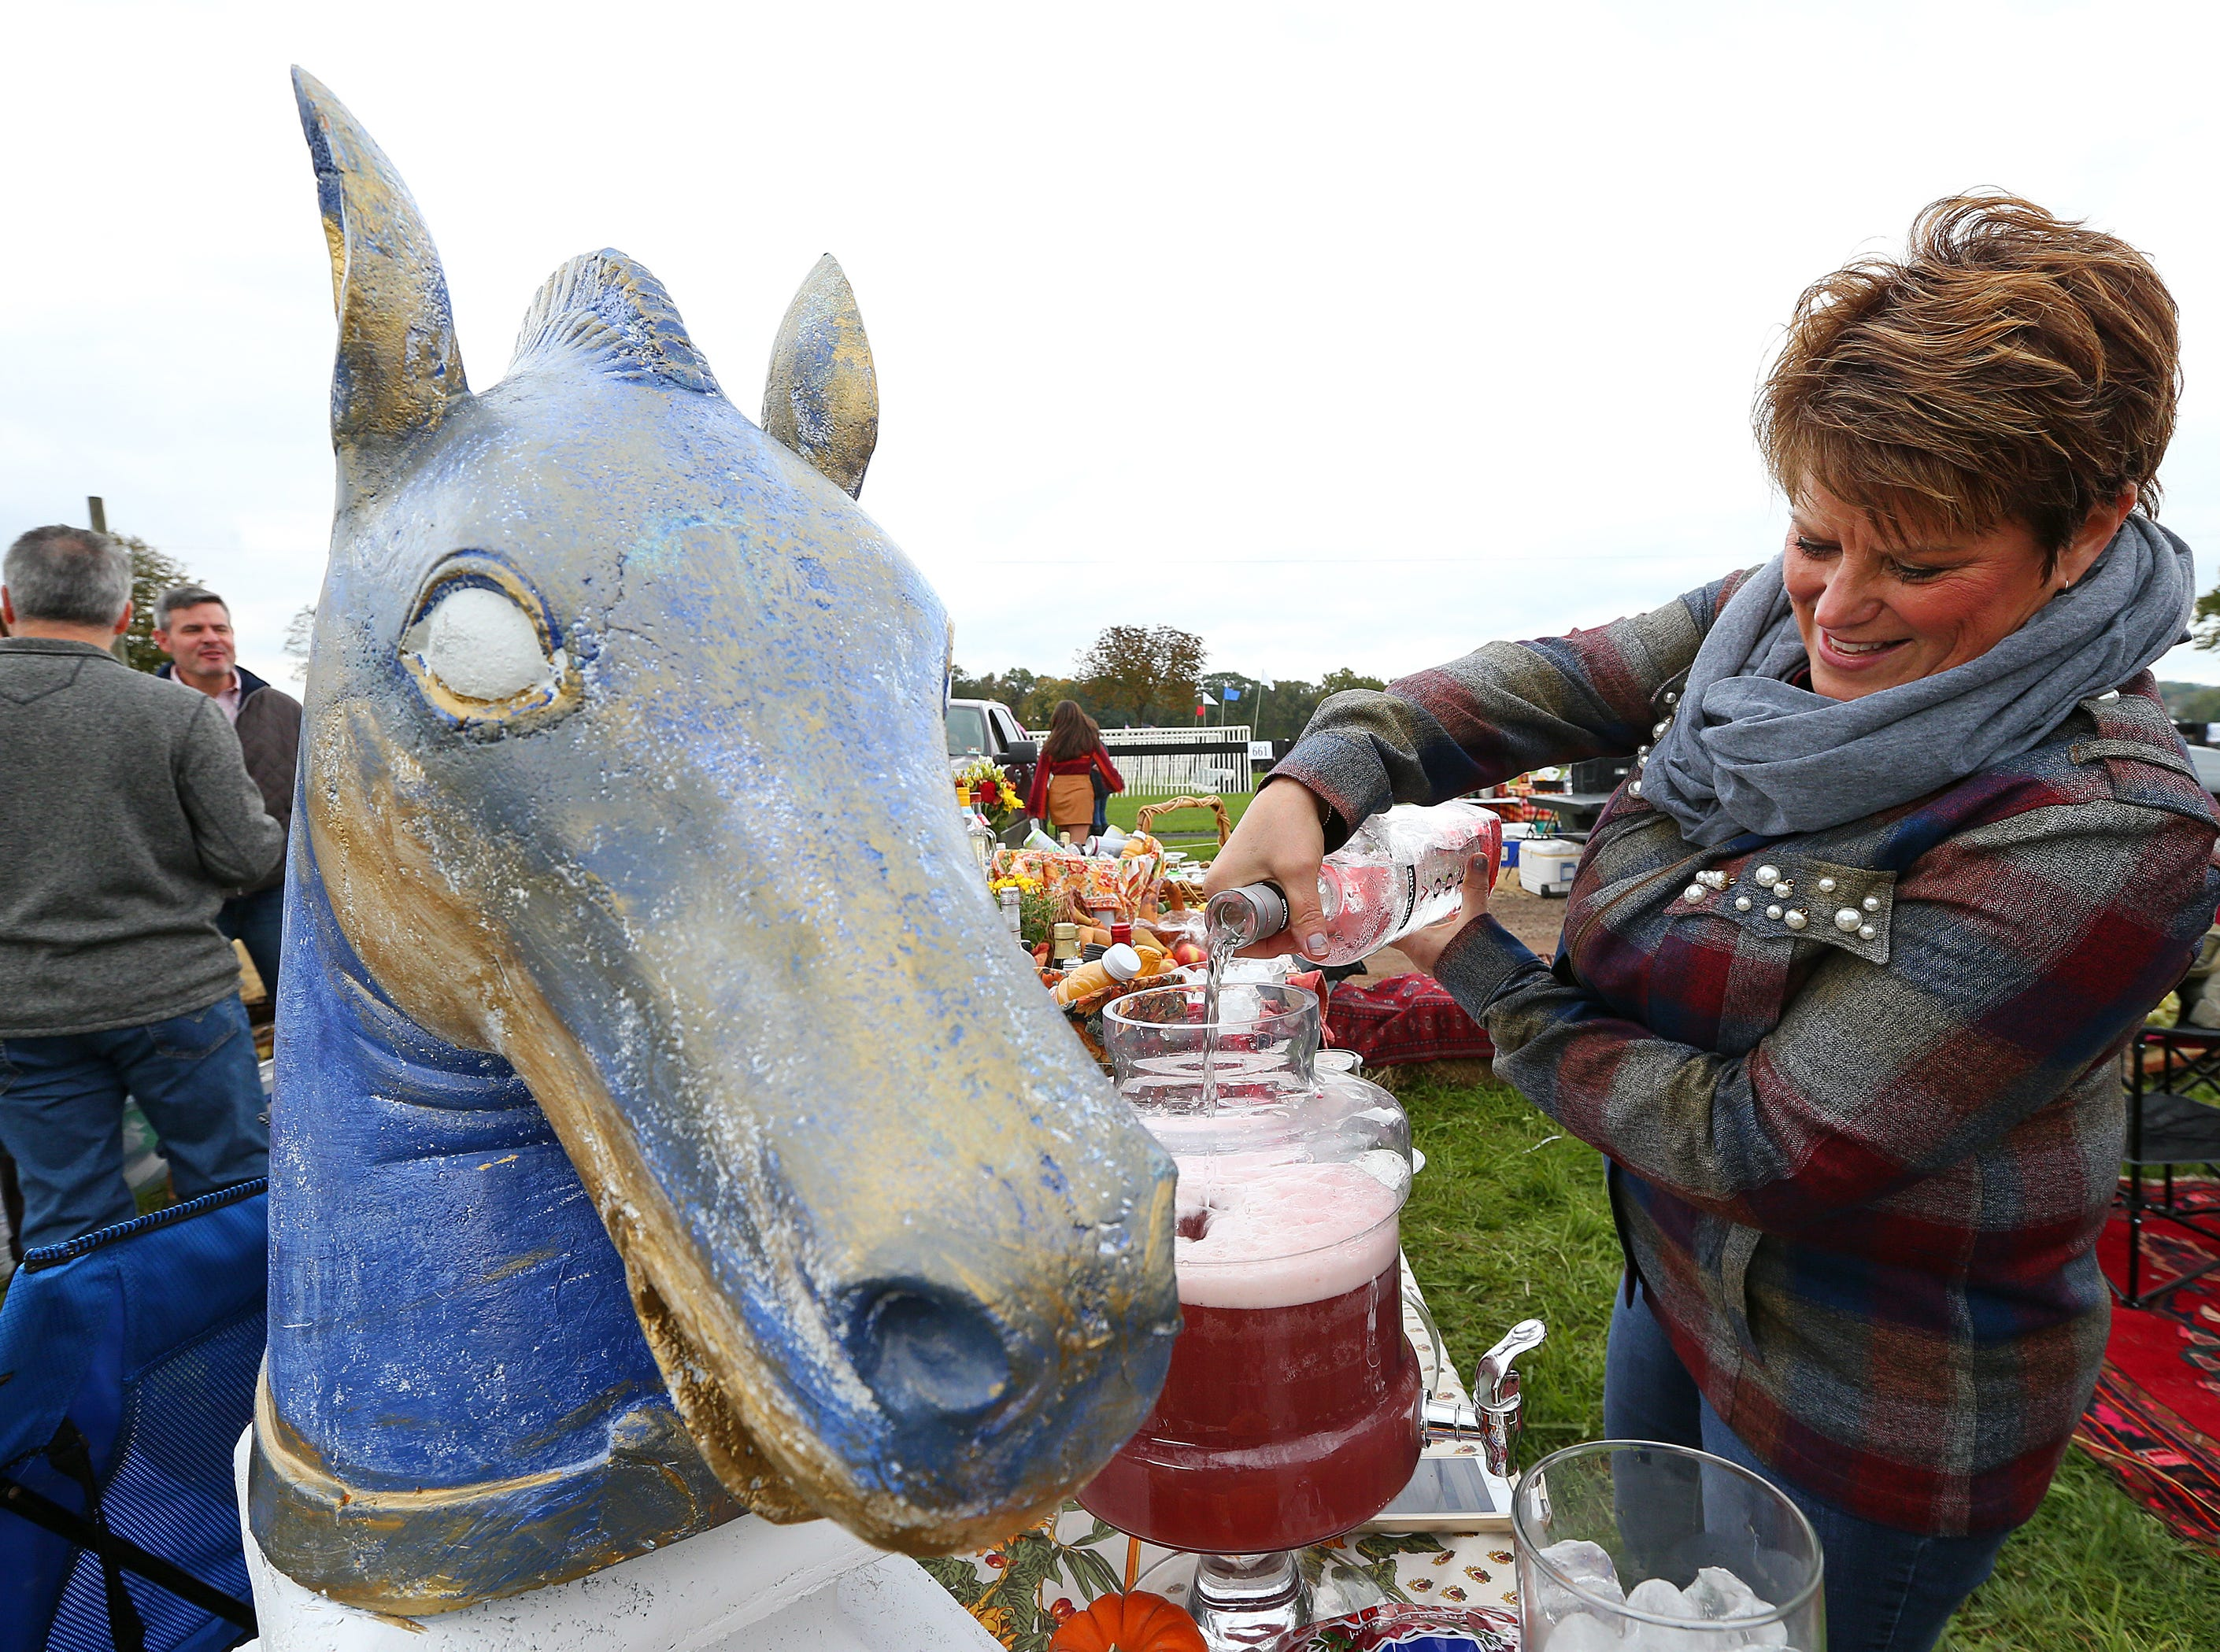 Liz Behring of Ann Arbor, Mi makes a fruit punch during the 98th running of the Far Hills Race Meeting at Moorland Farm in Far Hills, N.J. on Saturday, Oct. 20, 2015. Photo by Rich Schultz/ HNT